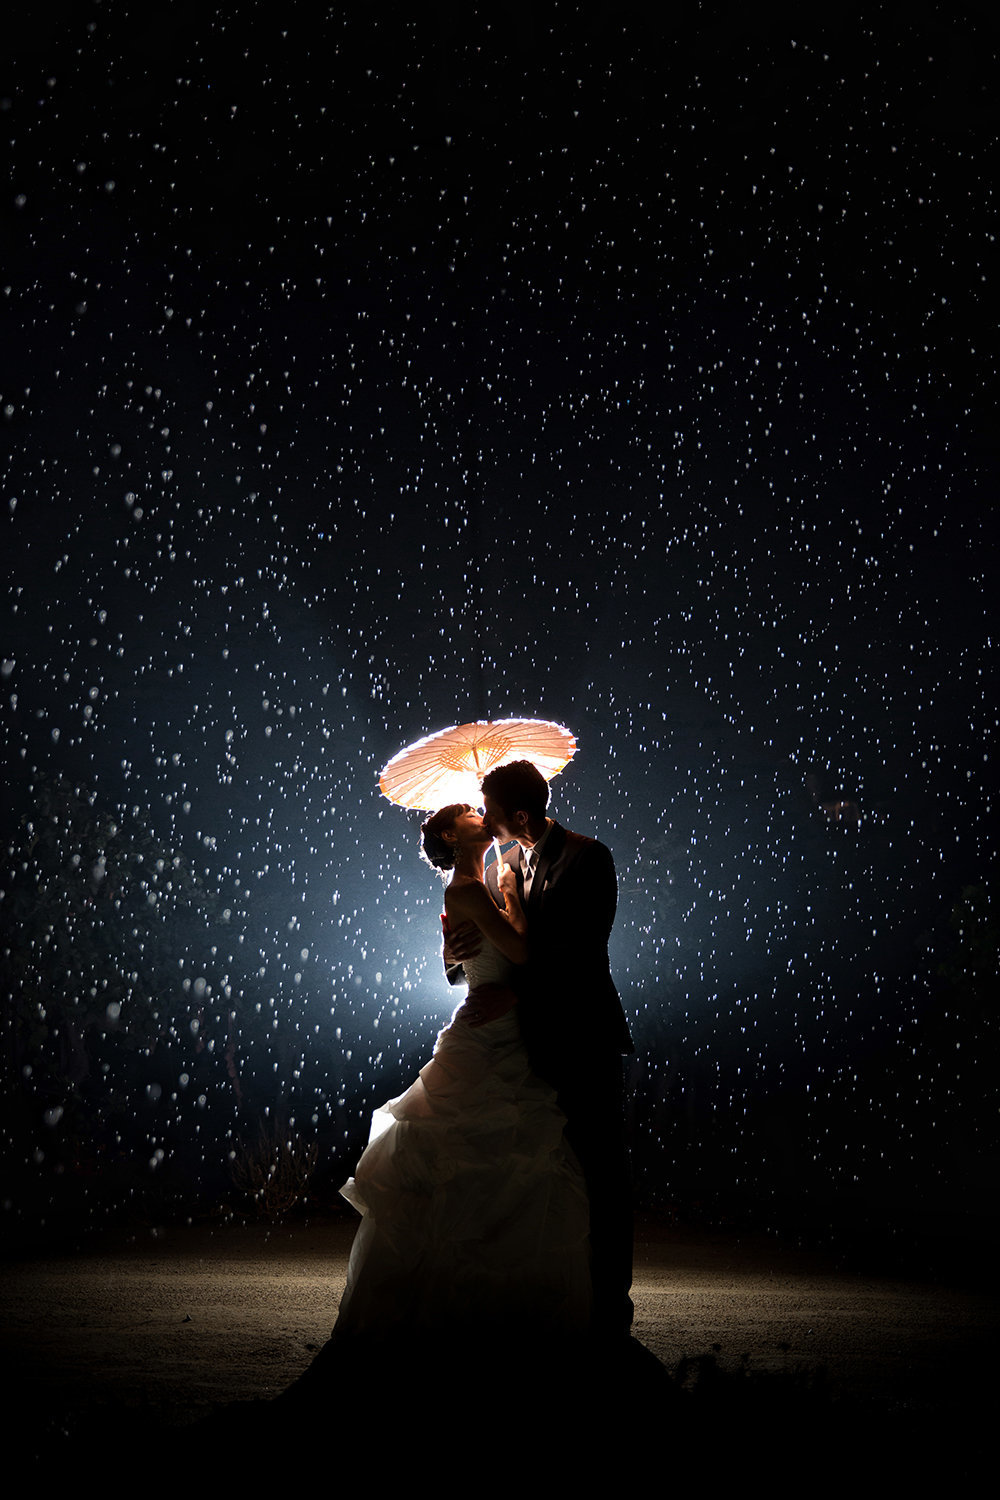 Temecula wedding photos  stunning night shot with rain